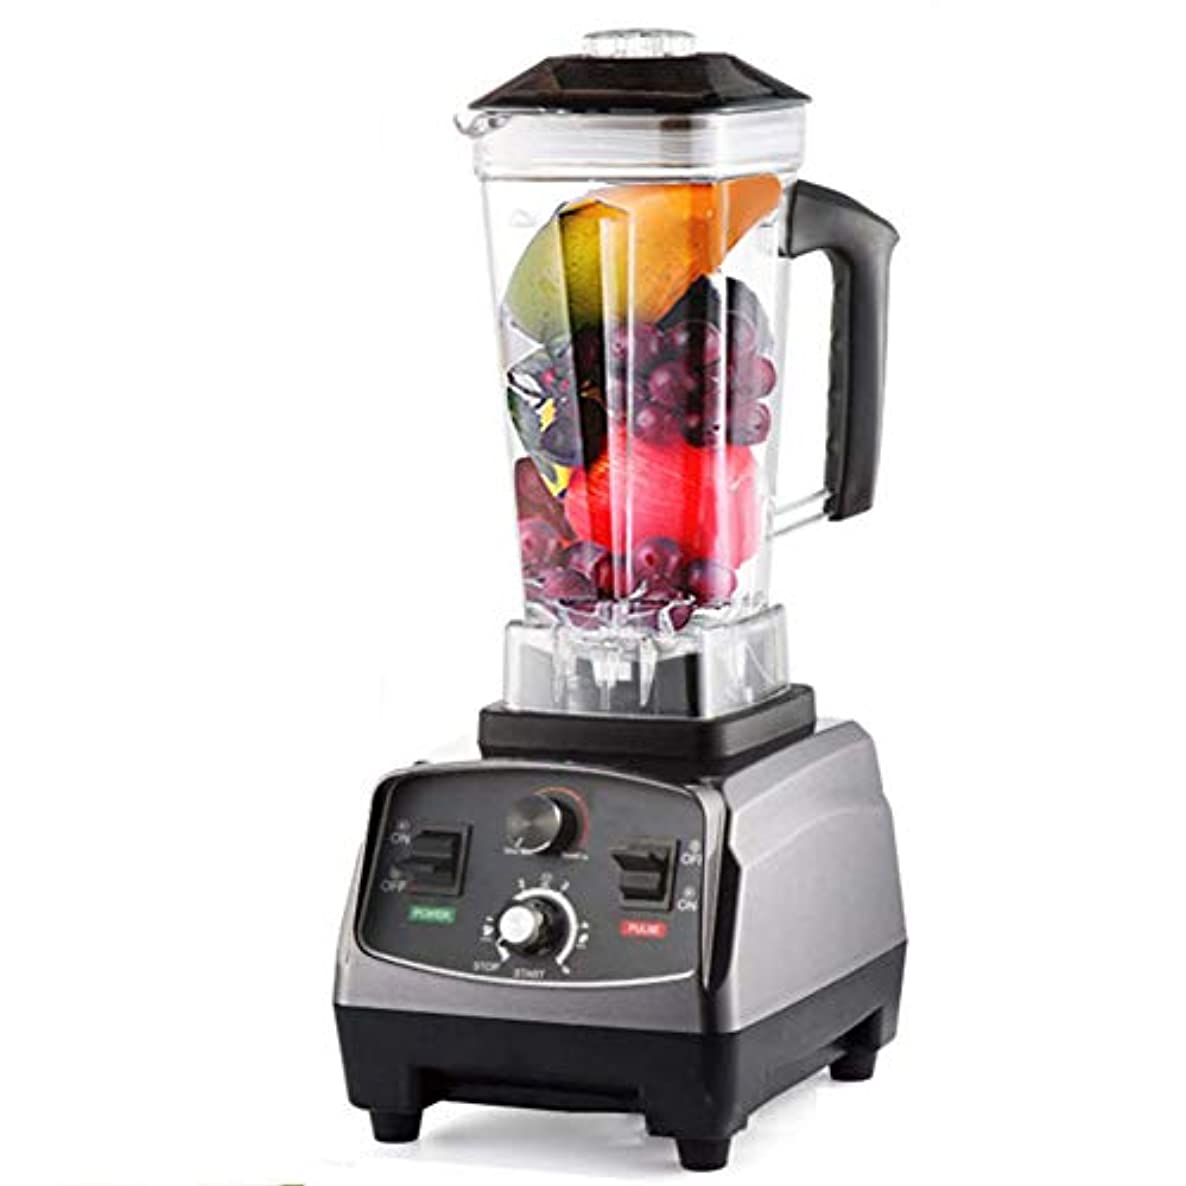 WLIXZ Professional Countertop Blender with 2200W Base and Recipe Booklet, for Frozen Drinks and Smoothies